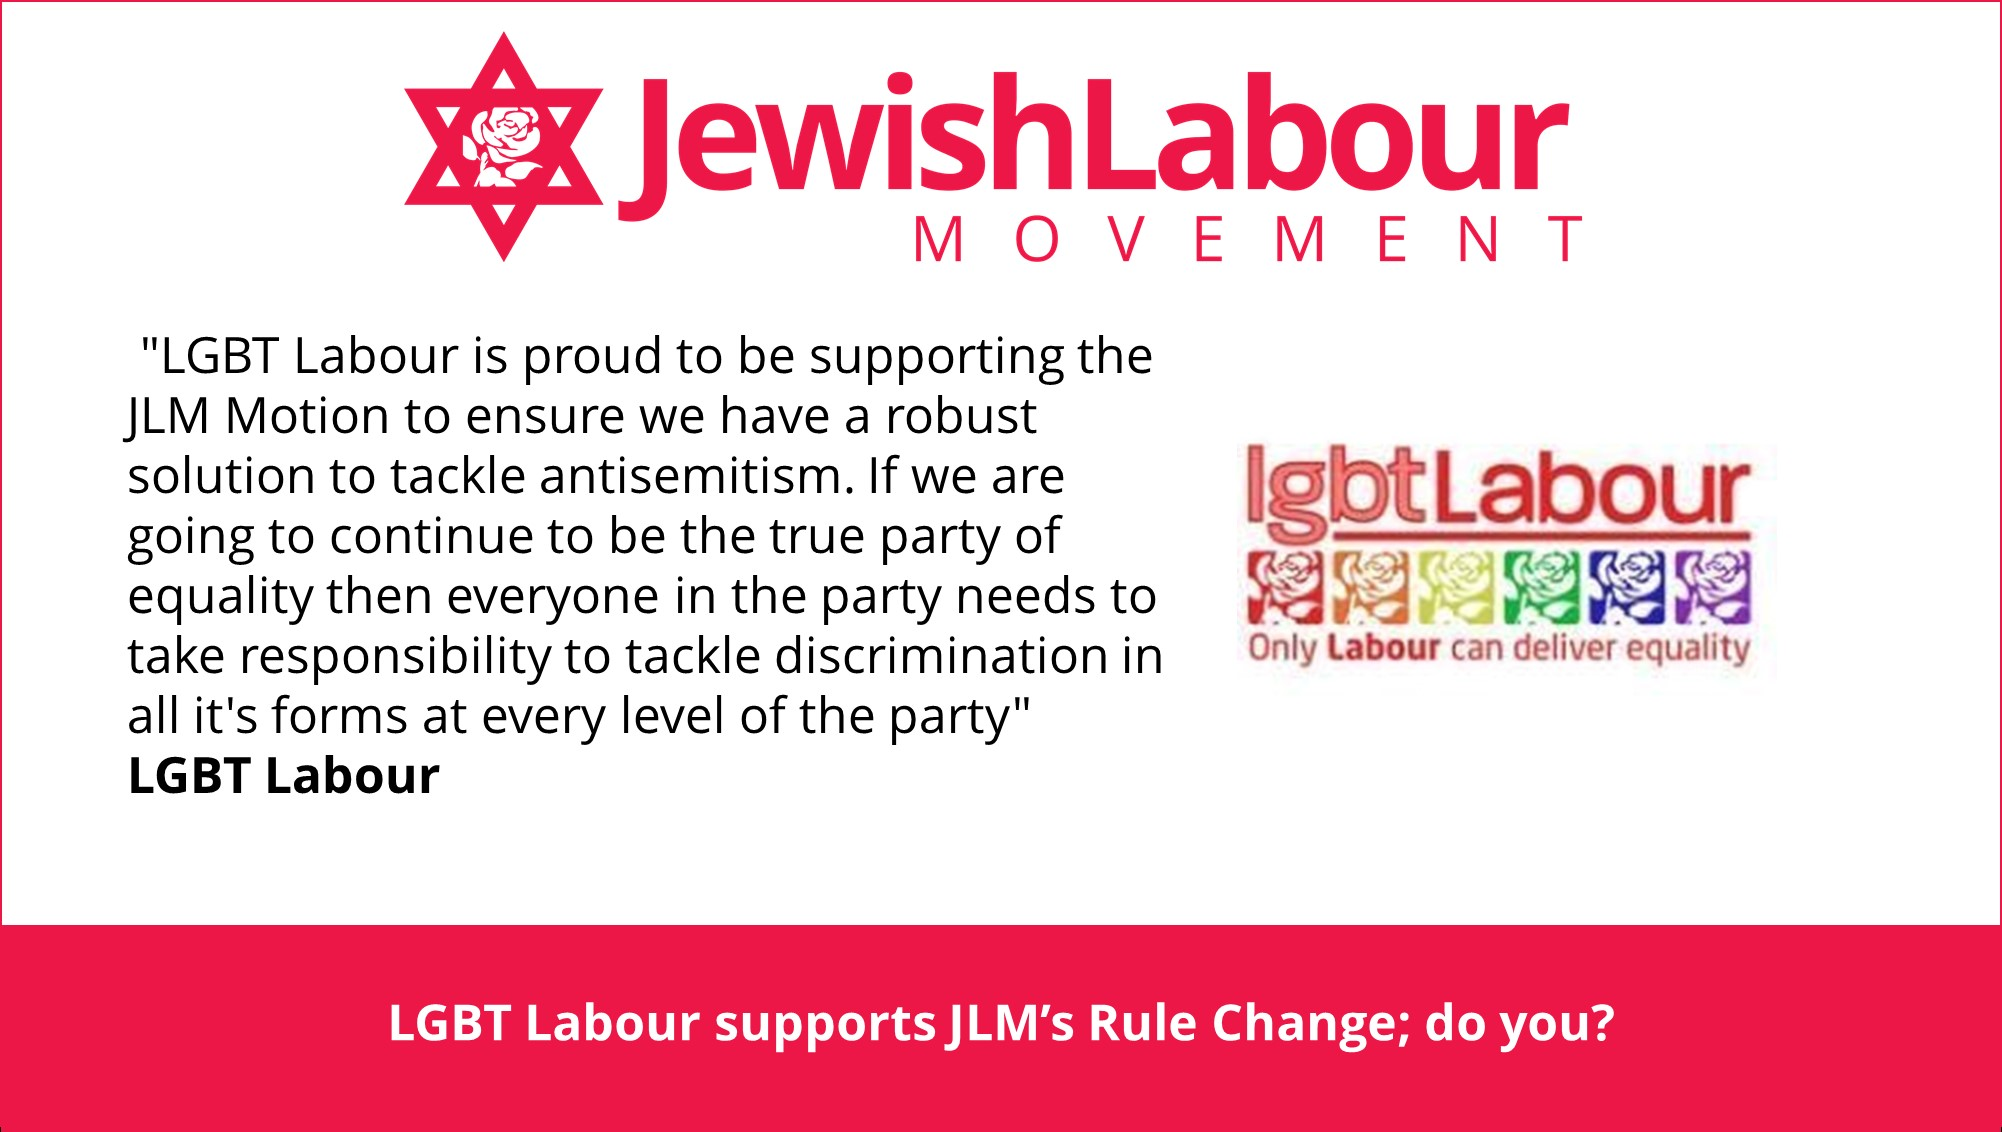 lgbt_labour_updated.jpg